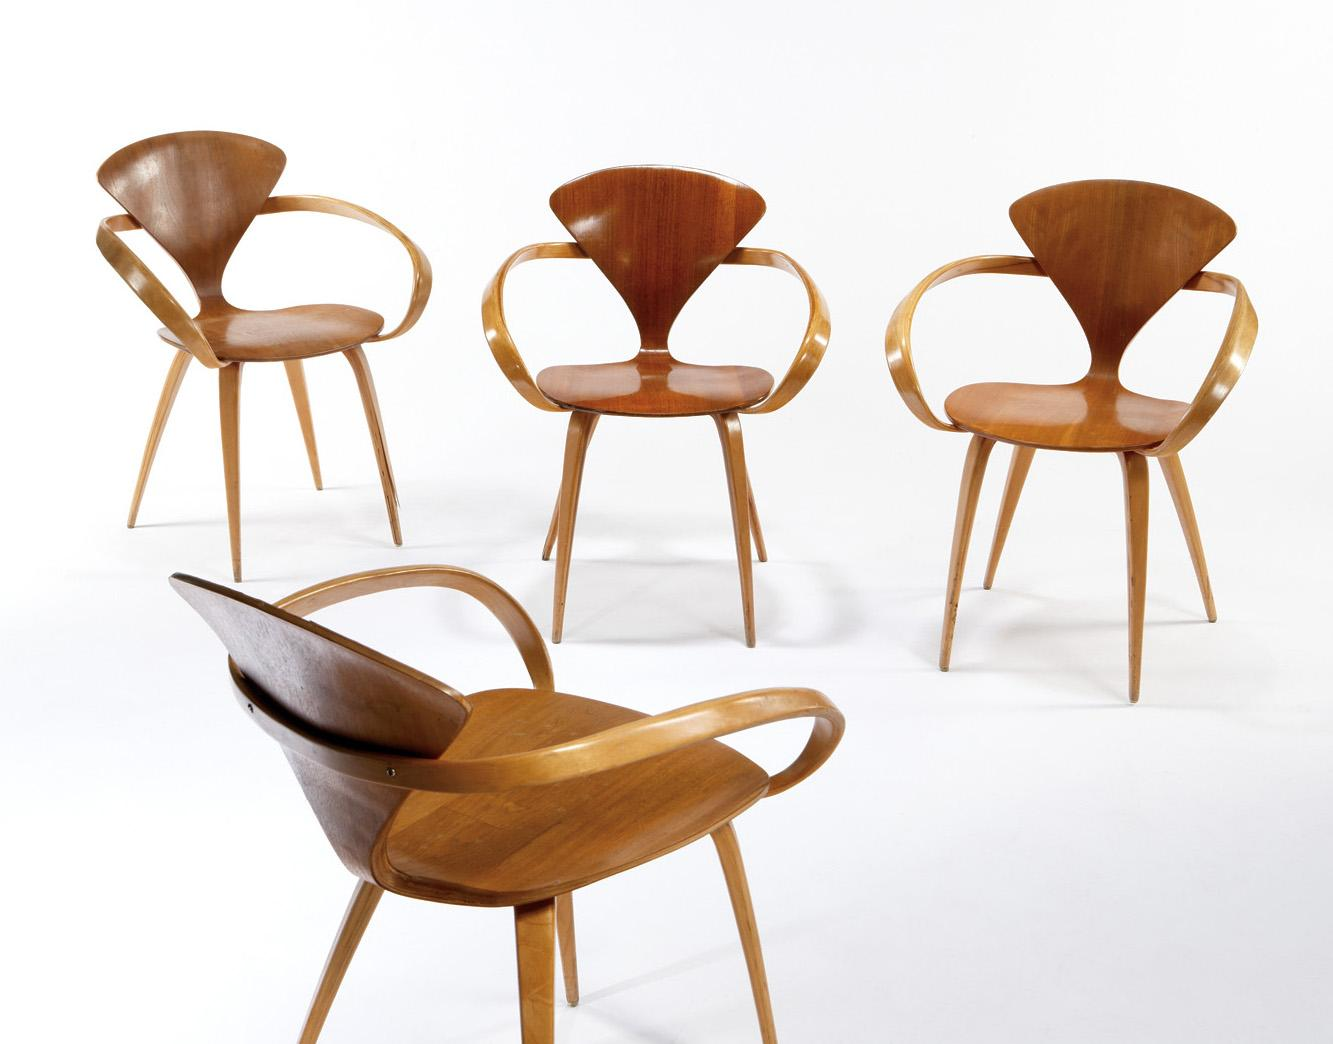 Image 1  Norman Cherner - Plycraft - Group of 4  Cherner  chairs  sc 1 st  iCollector.com & Norman Cherner - Plycraft - Group of 4